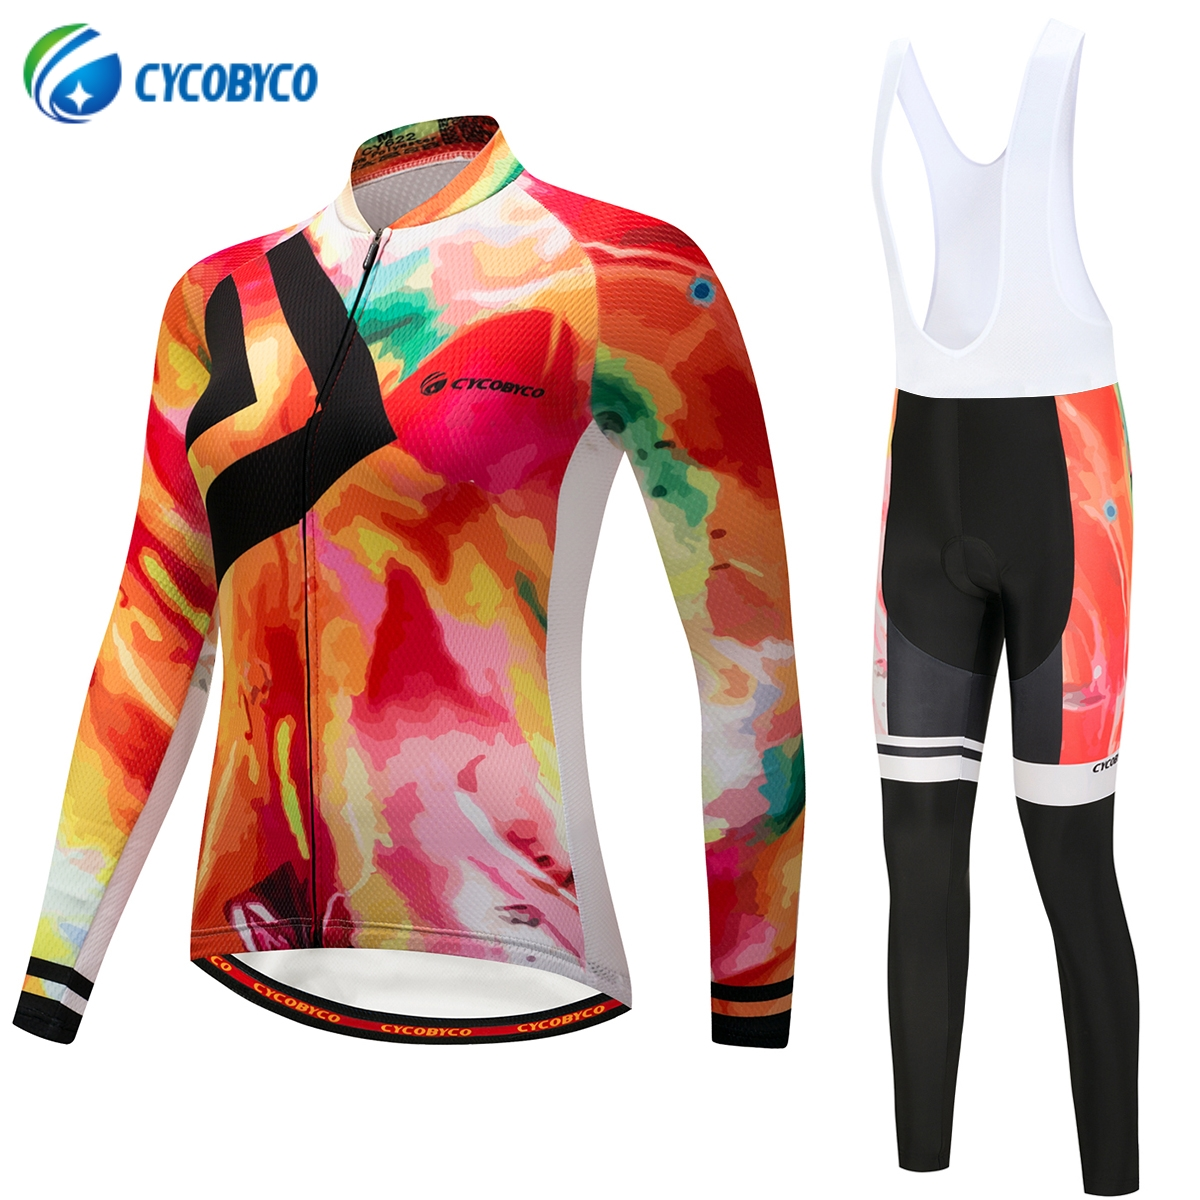 Cycobyco Autumn Colorful Women Cycling Jersey Set  Mountian Bike Wear Ropa  Ciclismo Cycling Bicycle Clothes Cycling Clothing f7dca2645